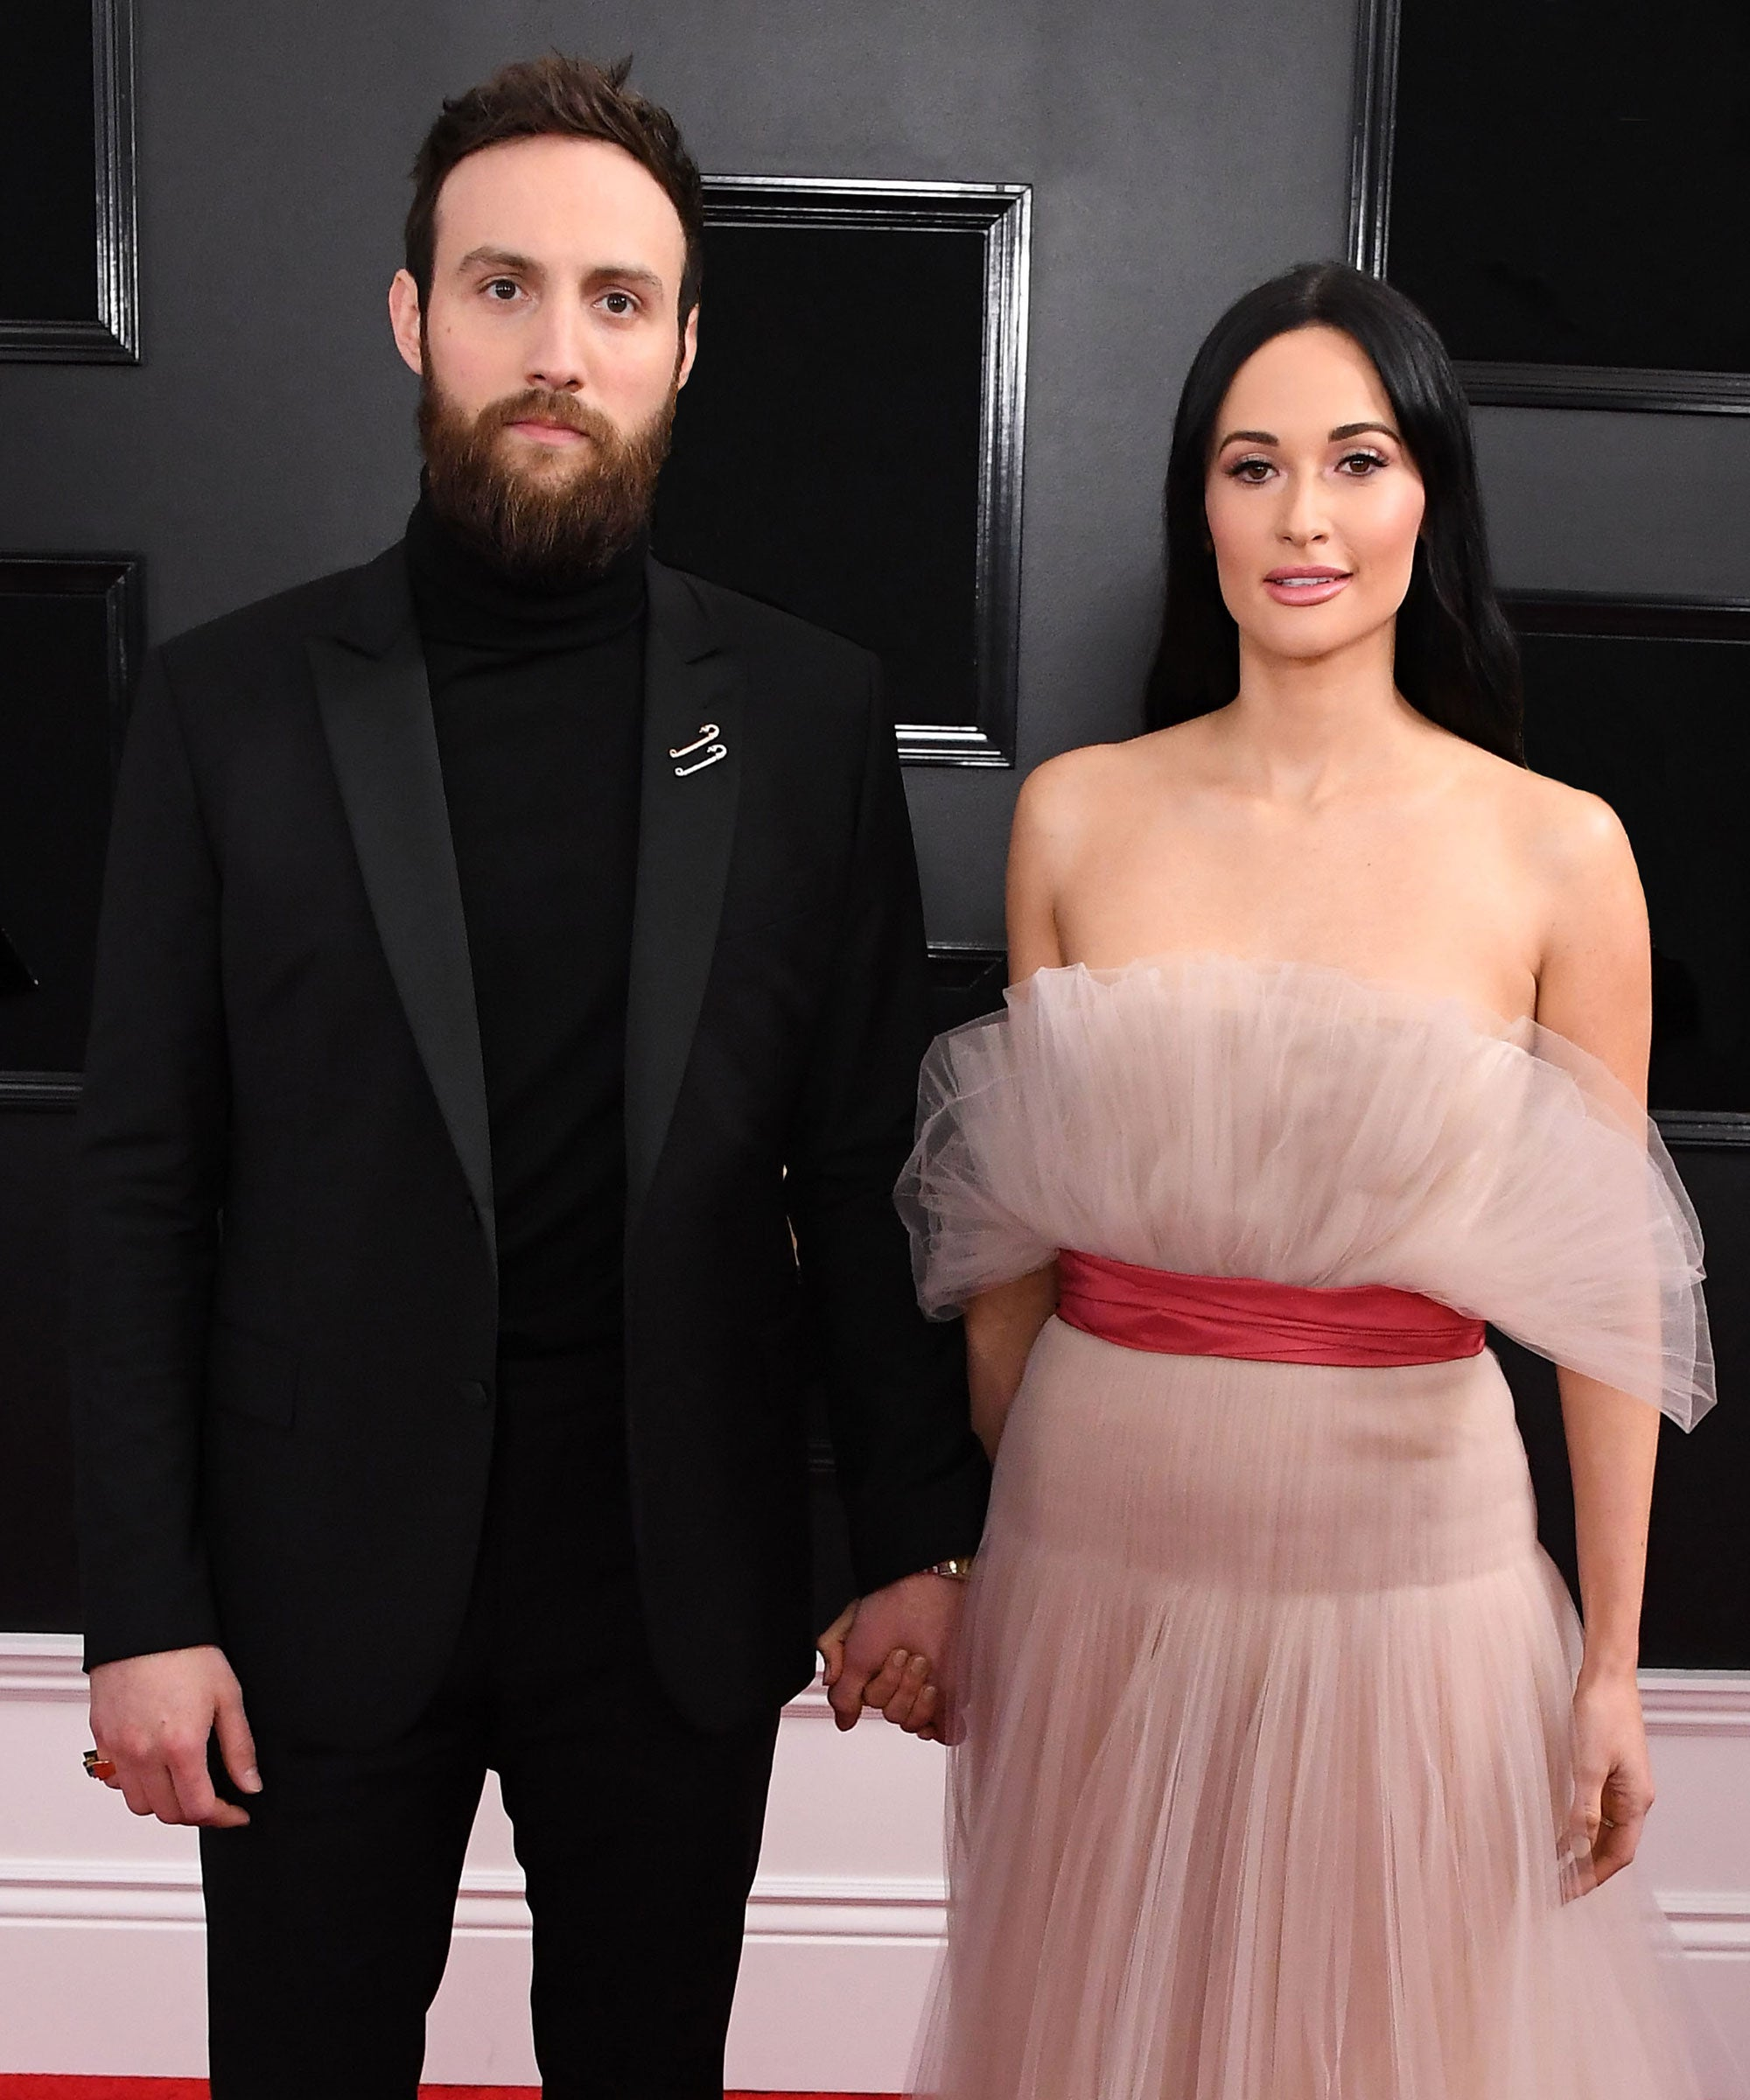 Kacey Musgraves & Her Husband Deleted Instas Of Each Other, But